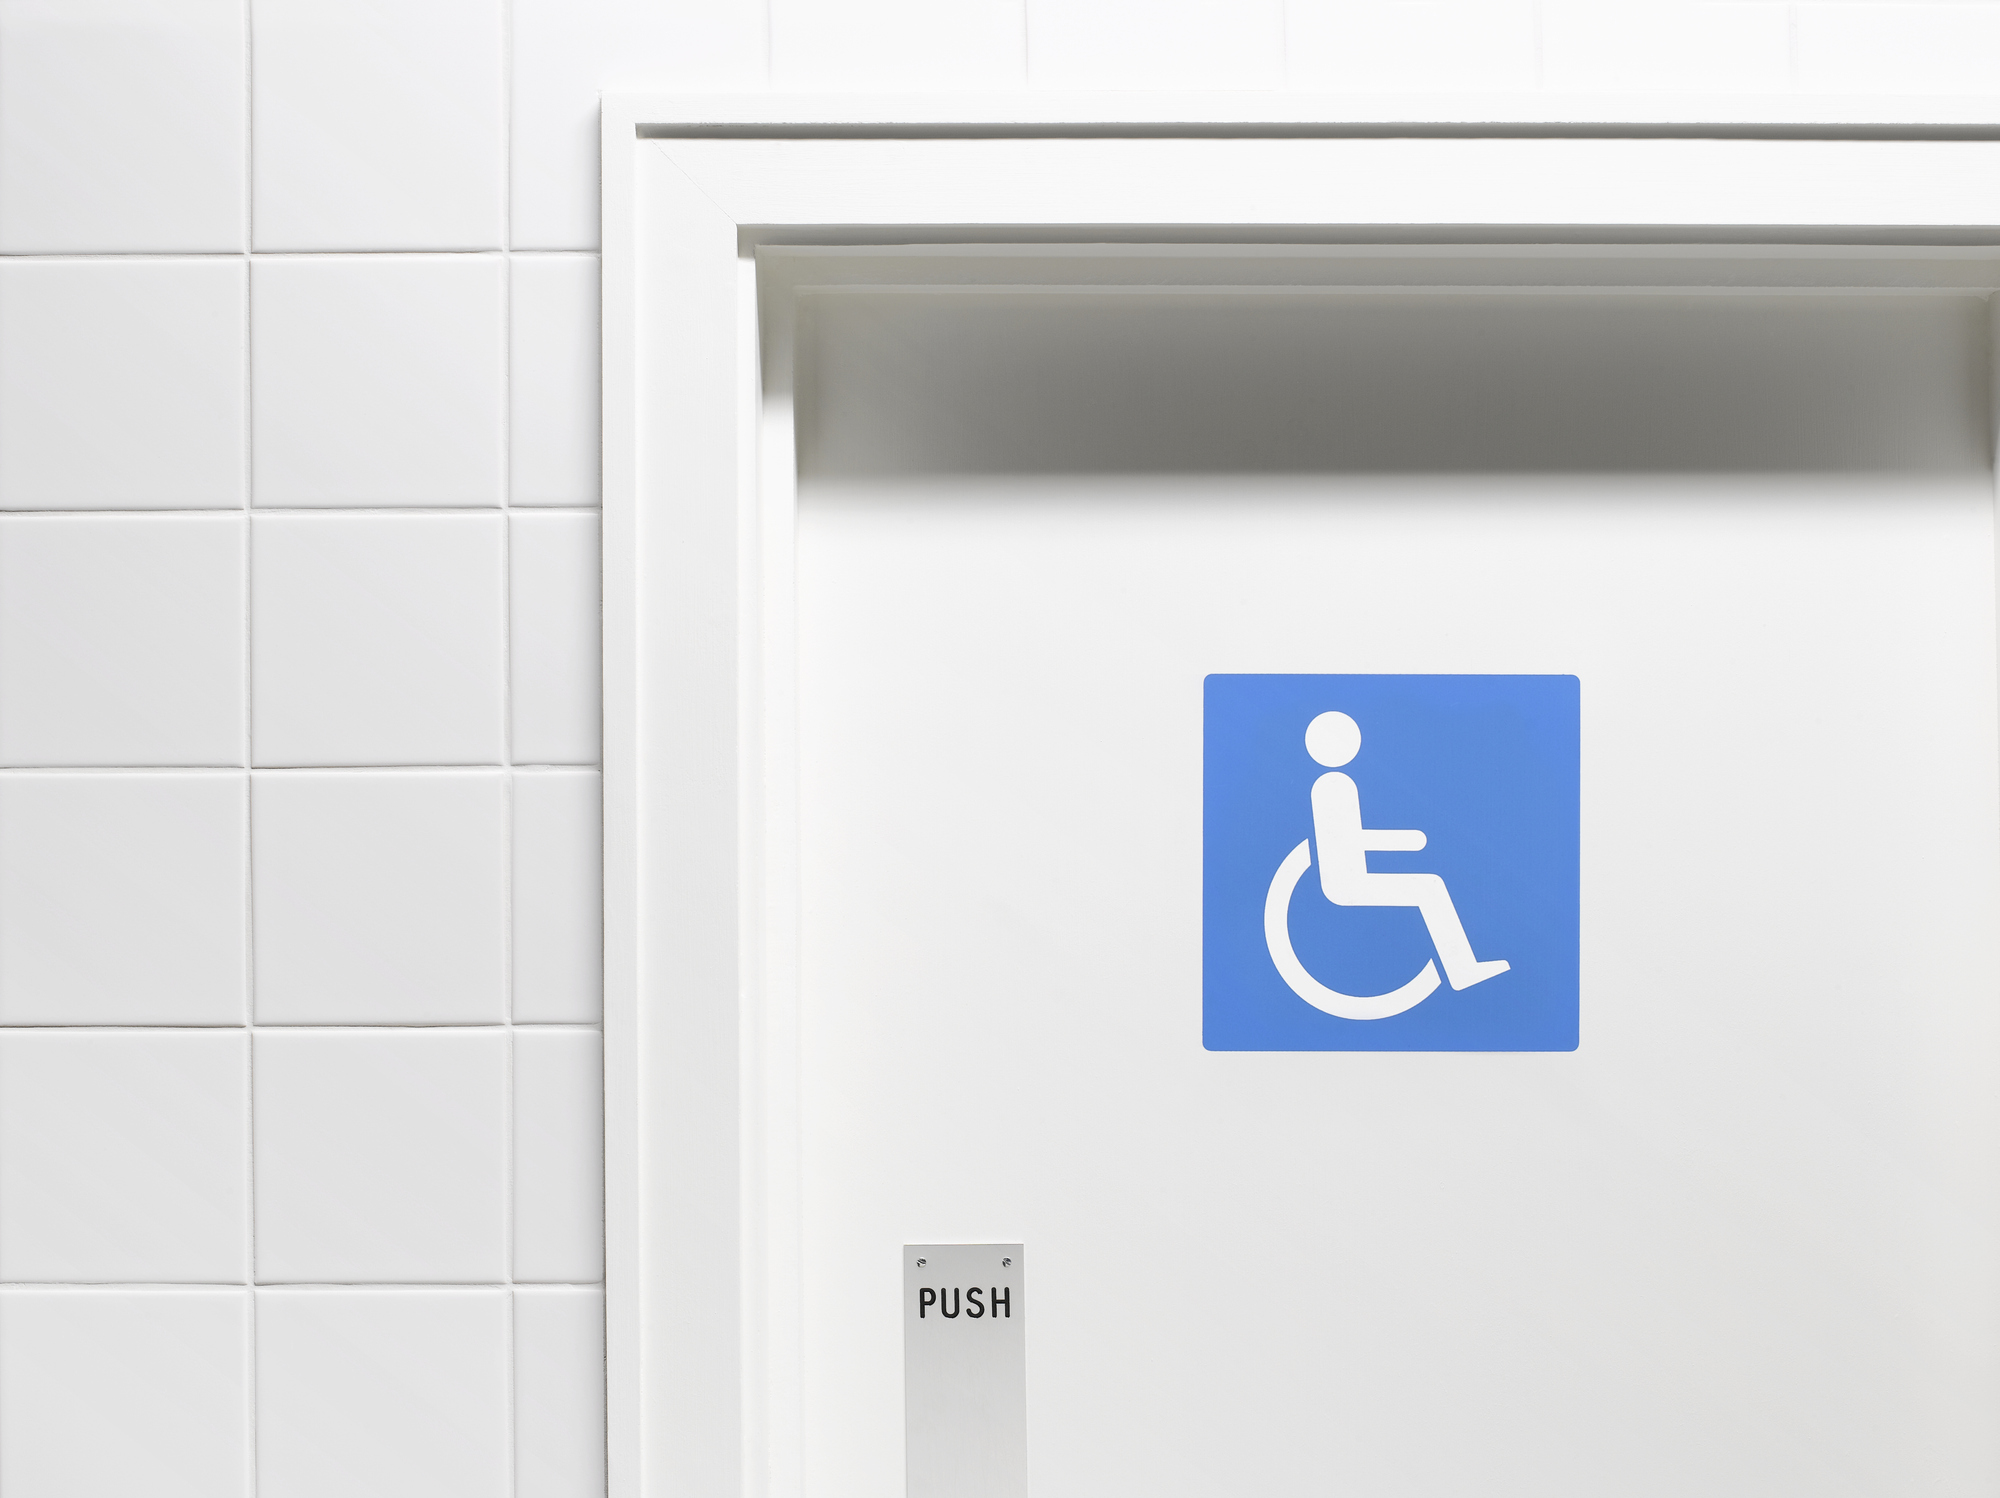 Nine out of 10 people say they would challenge someone who doesn't look sick when they use a disabled bathroom